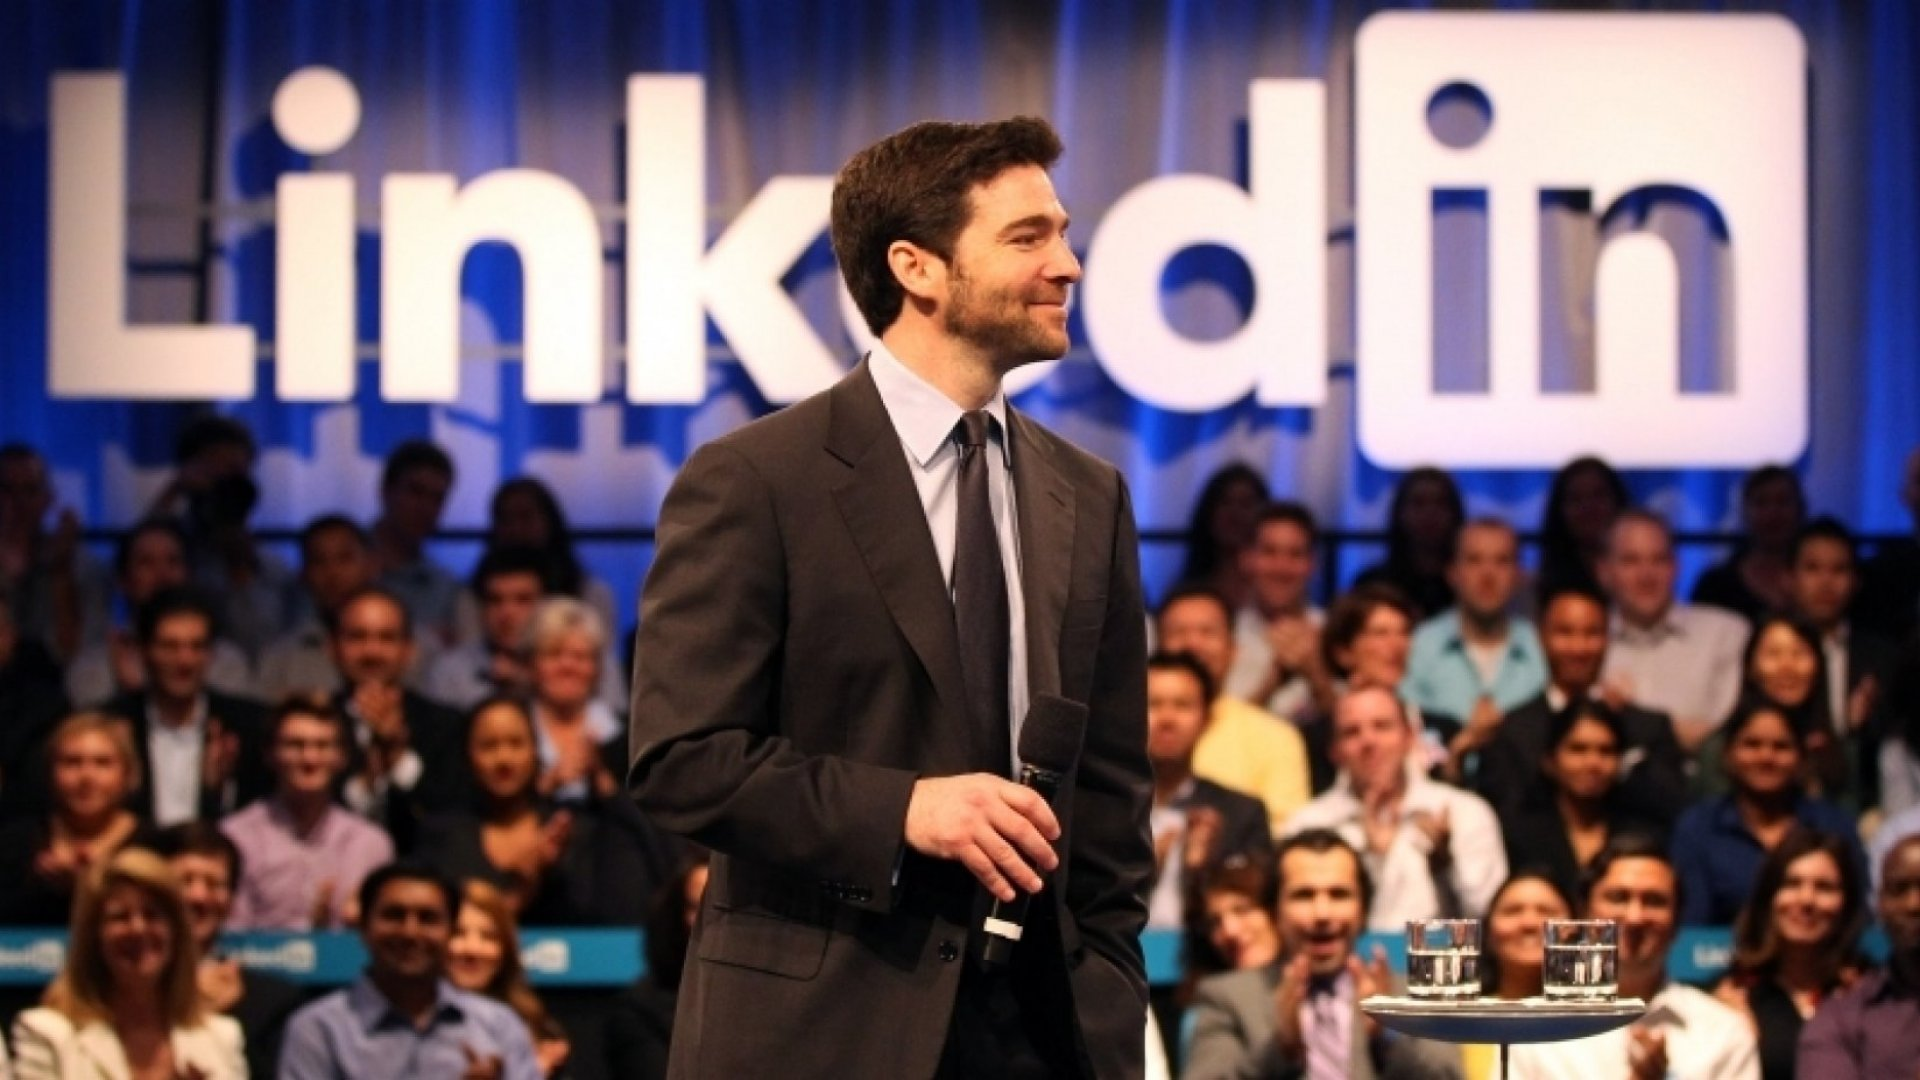 This Is How LinkedIn Is Taking Over the World